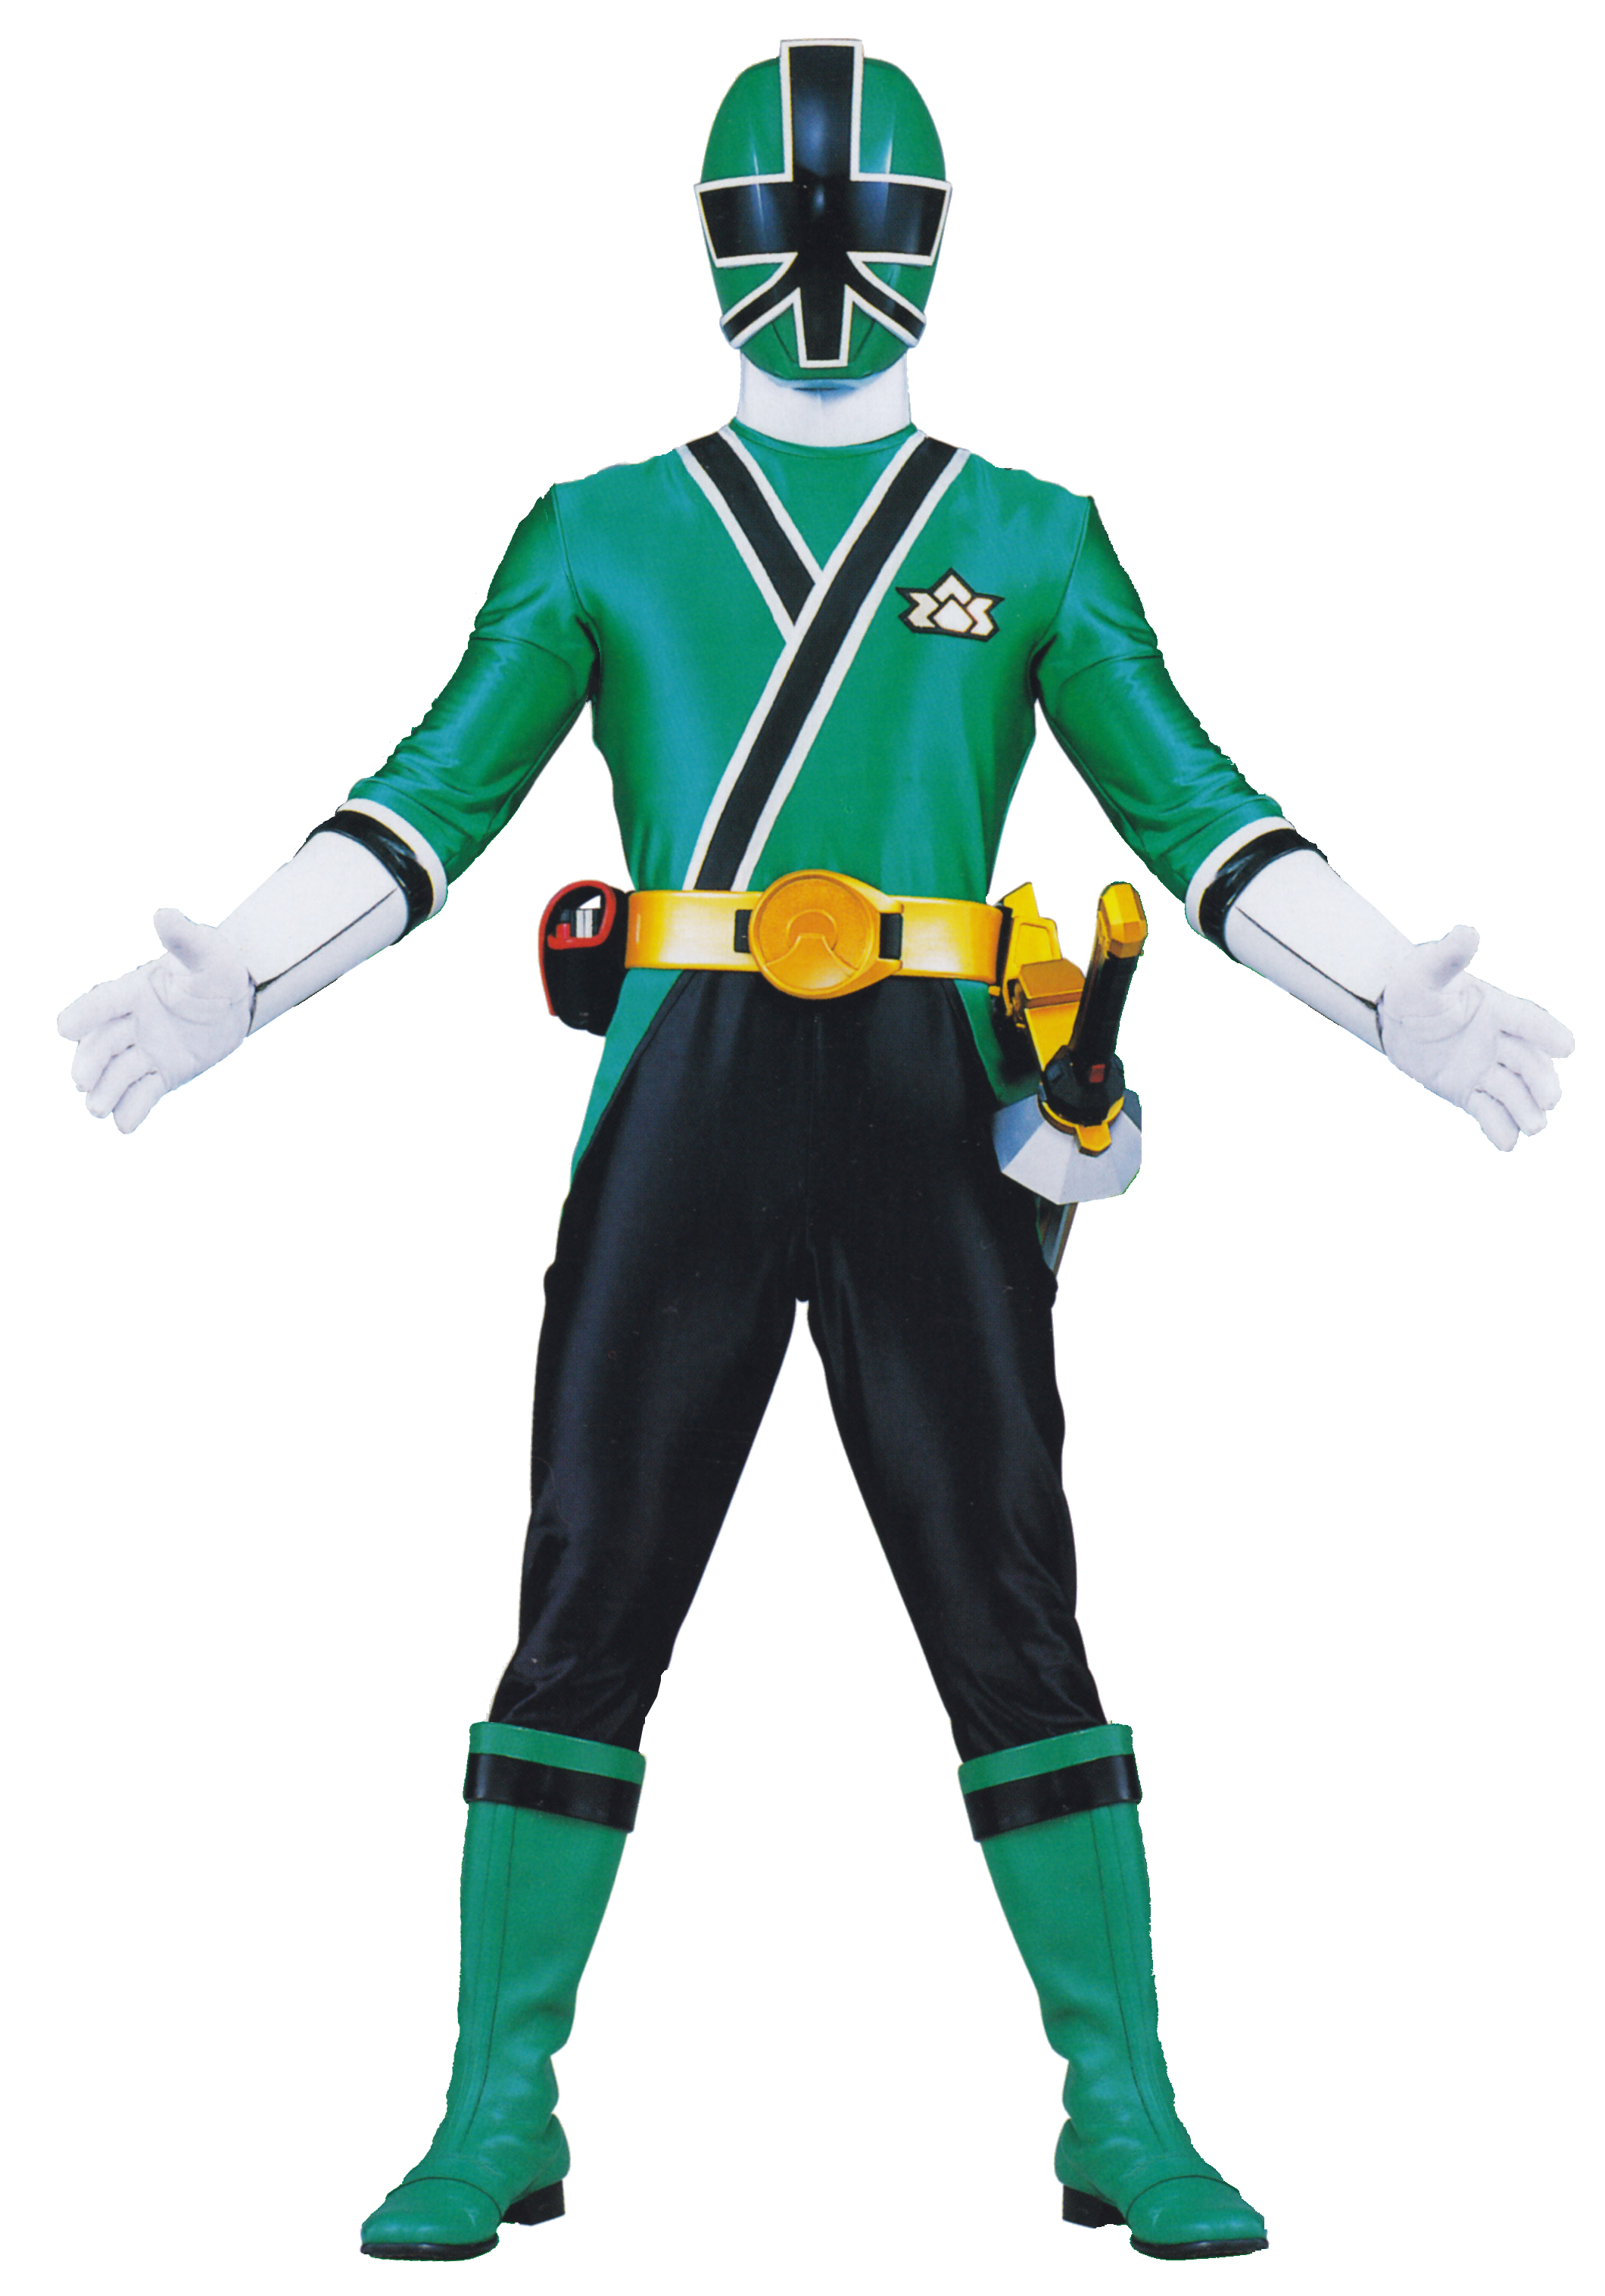 I searched for Power Rangers Samurai green ranger images on Bing and found this from   sc 1 st  Pinterest & I searched for Power Rangers Samurai green ranger images on Bing and ...